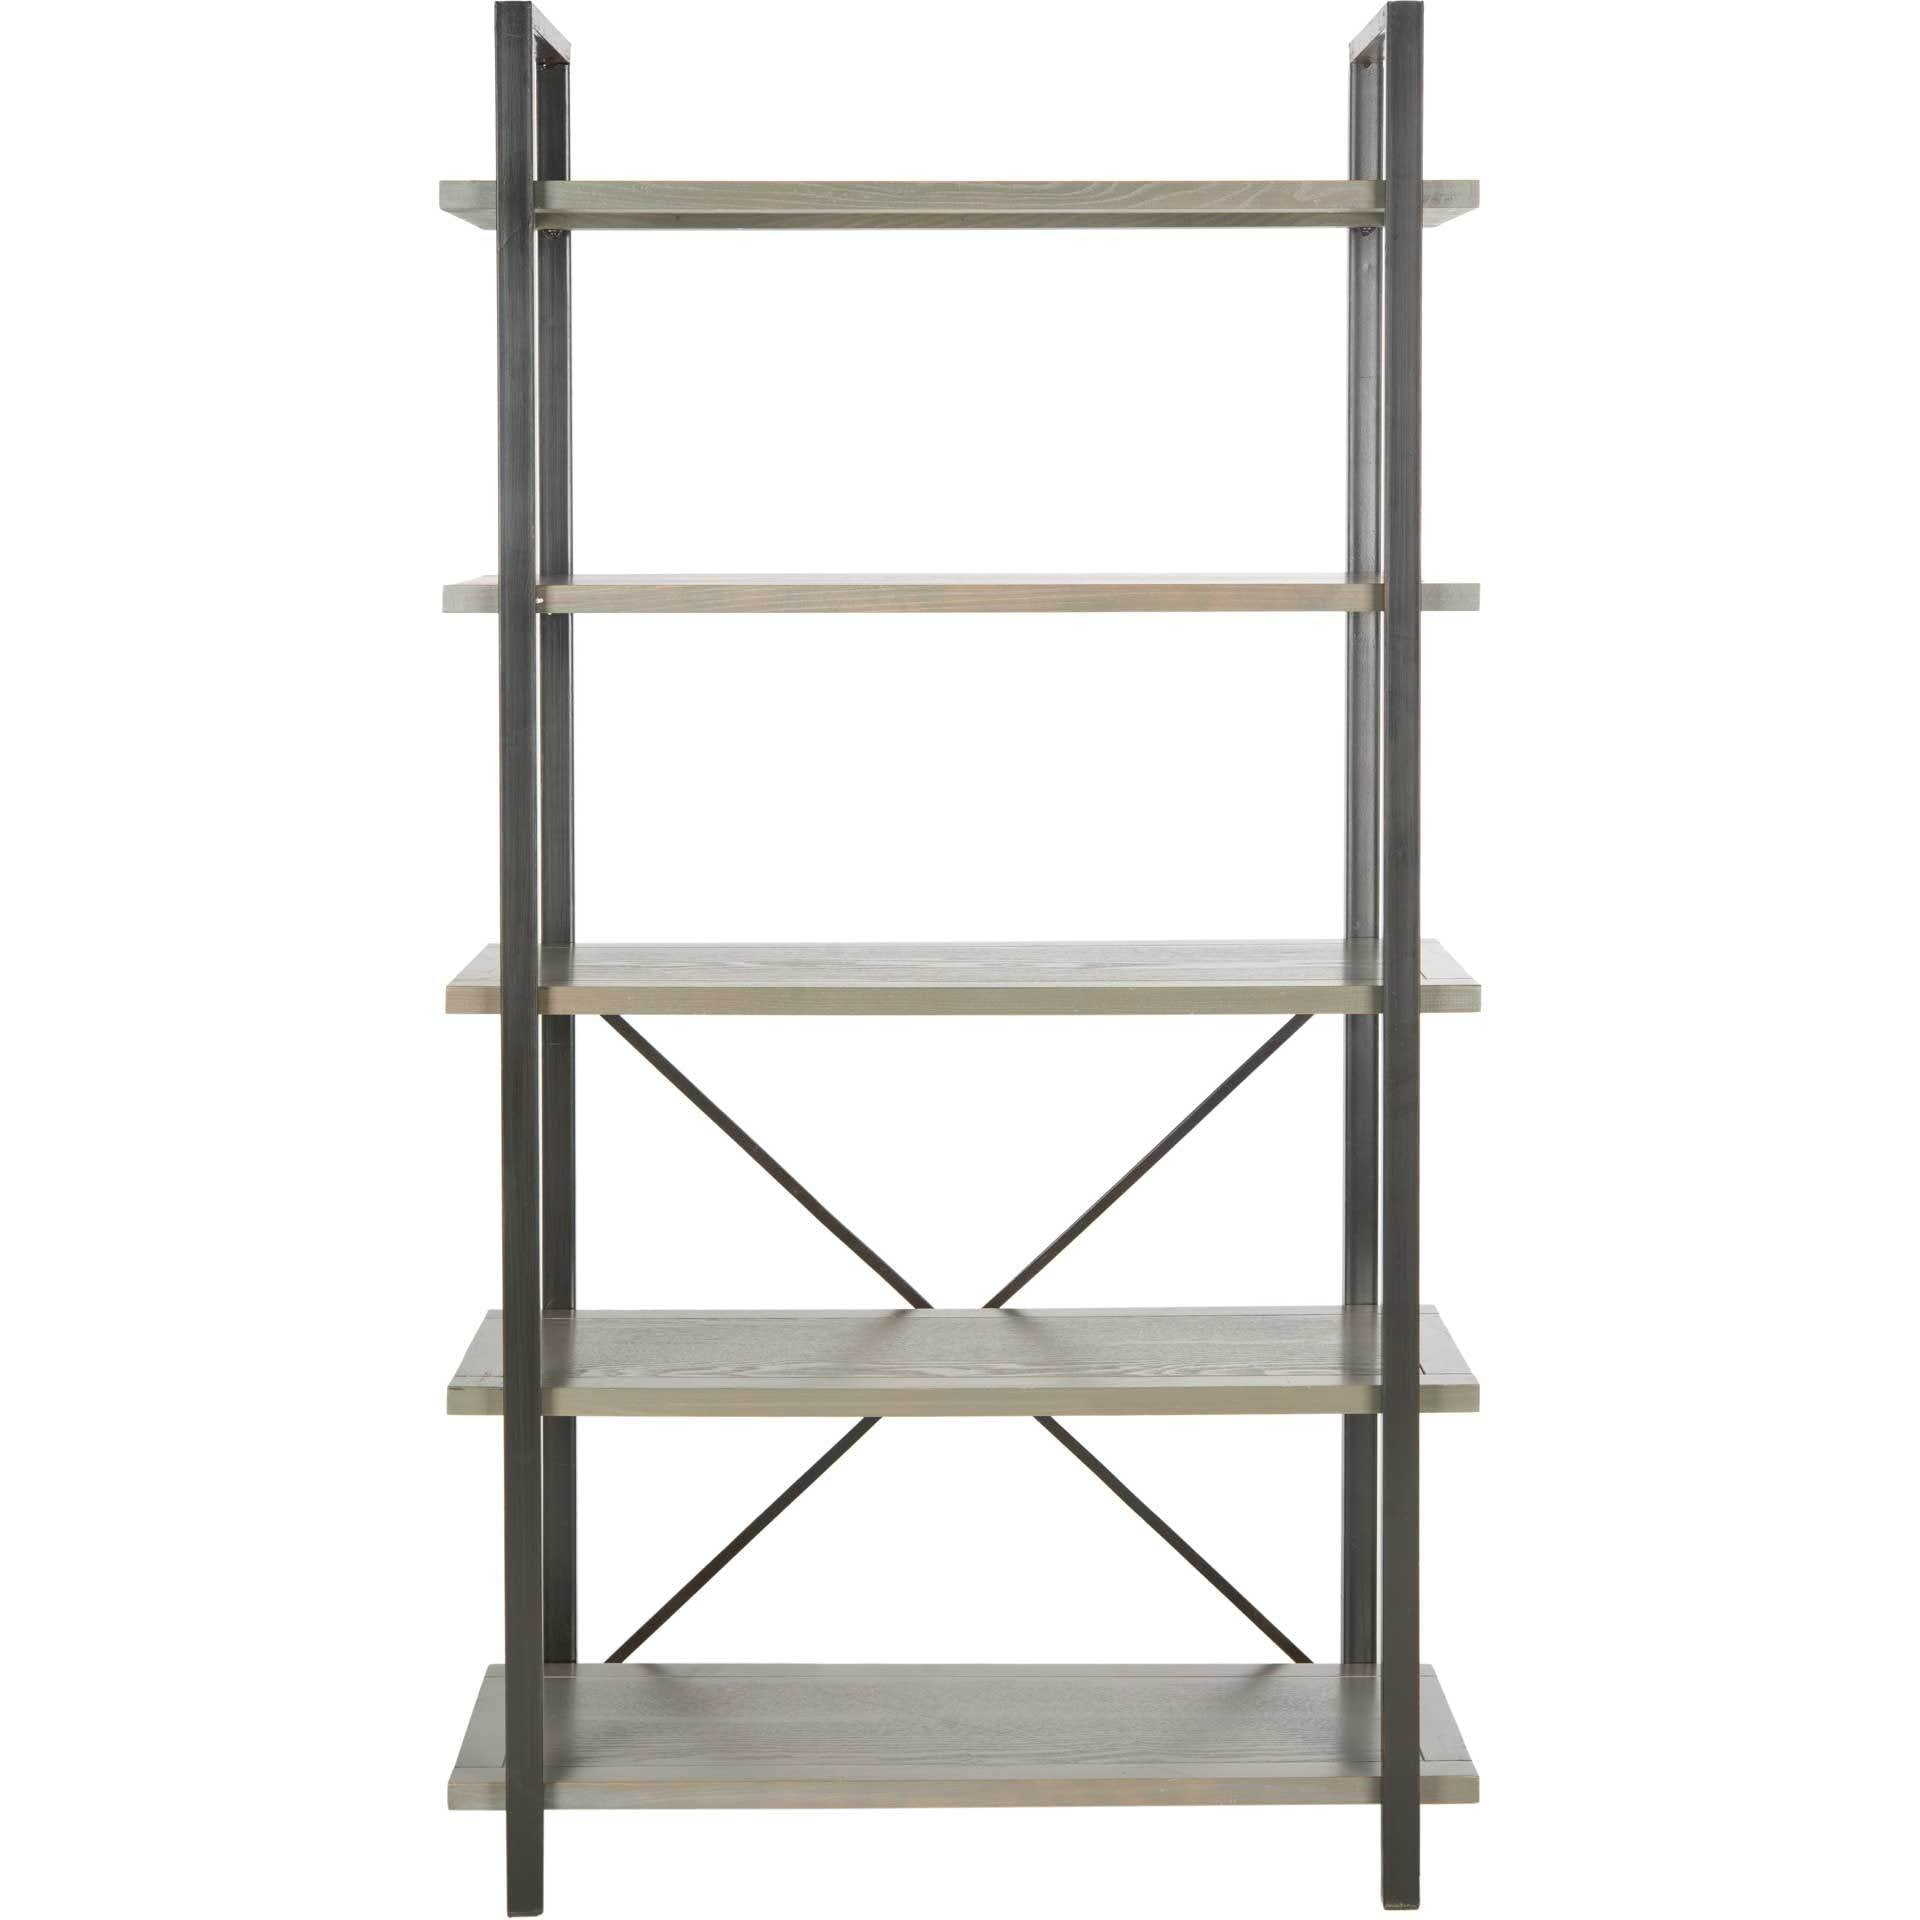 Chanel 5 Tier Etagere French Gray